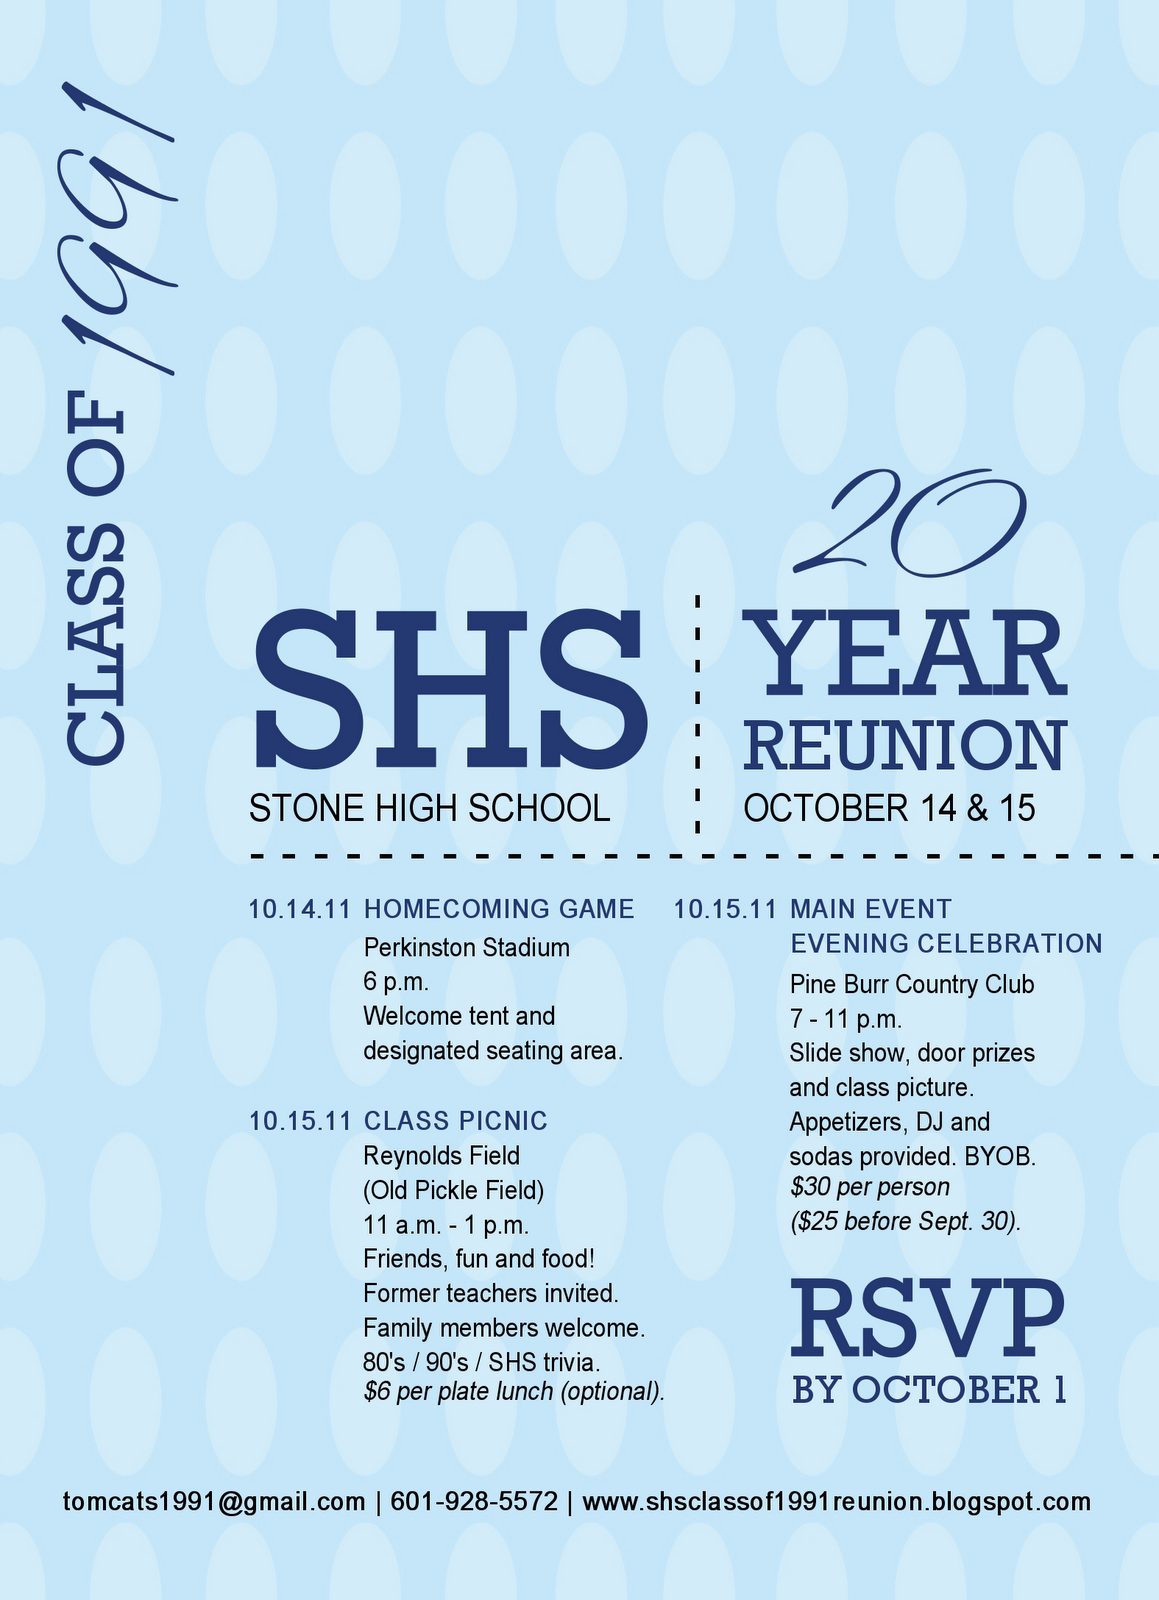 Stone high class of 1991 20 year reunion reunion invitation stone high class of 1991 20 year reunion reunion invitation stopboris